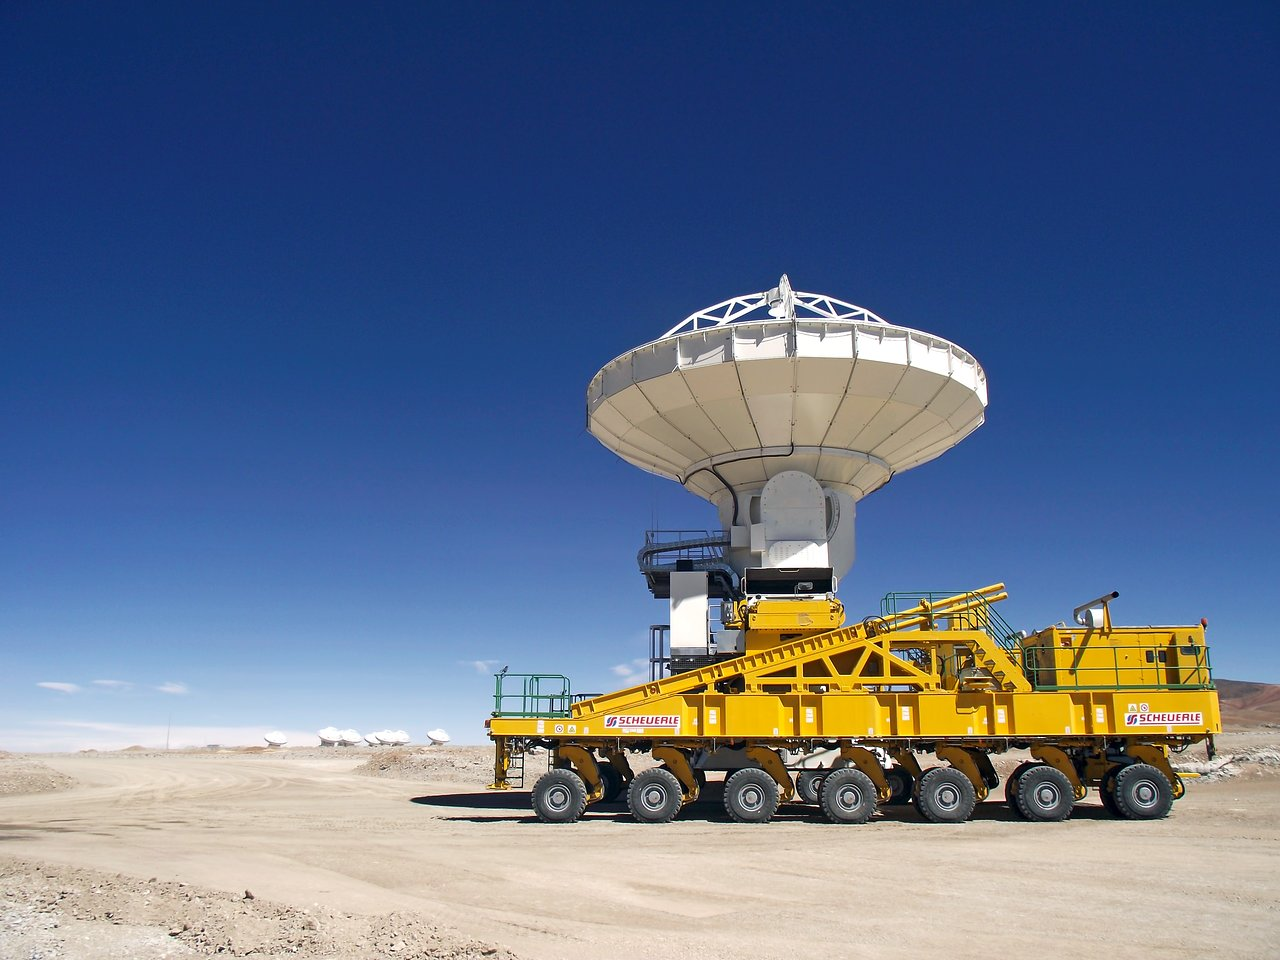 ALMA's 9th Antenna Arrives at the AOS